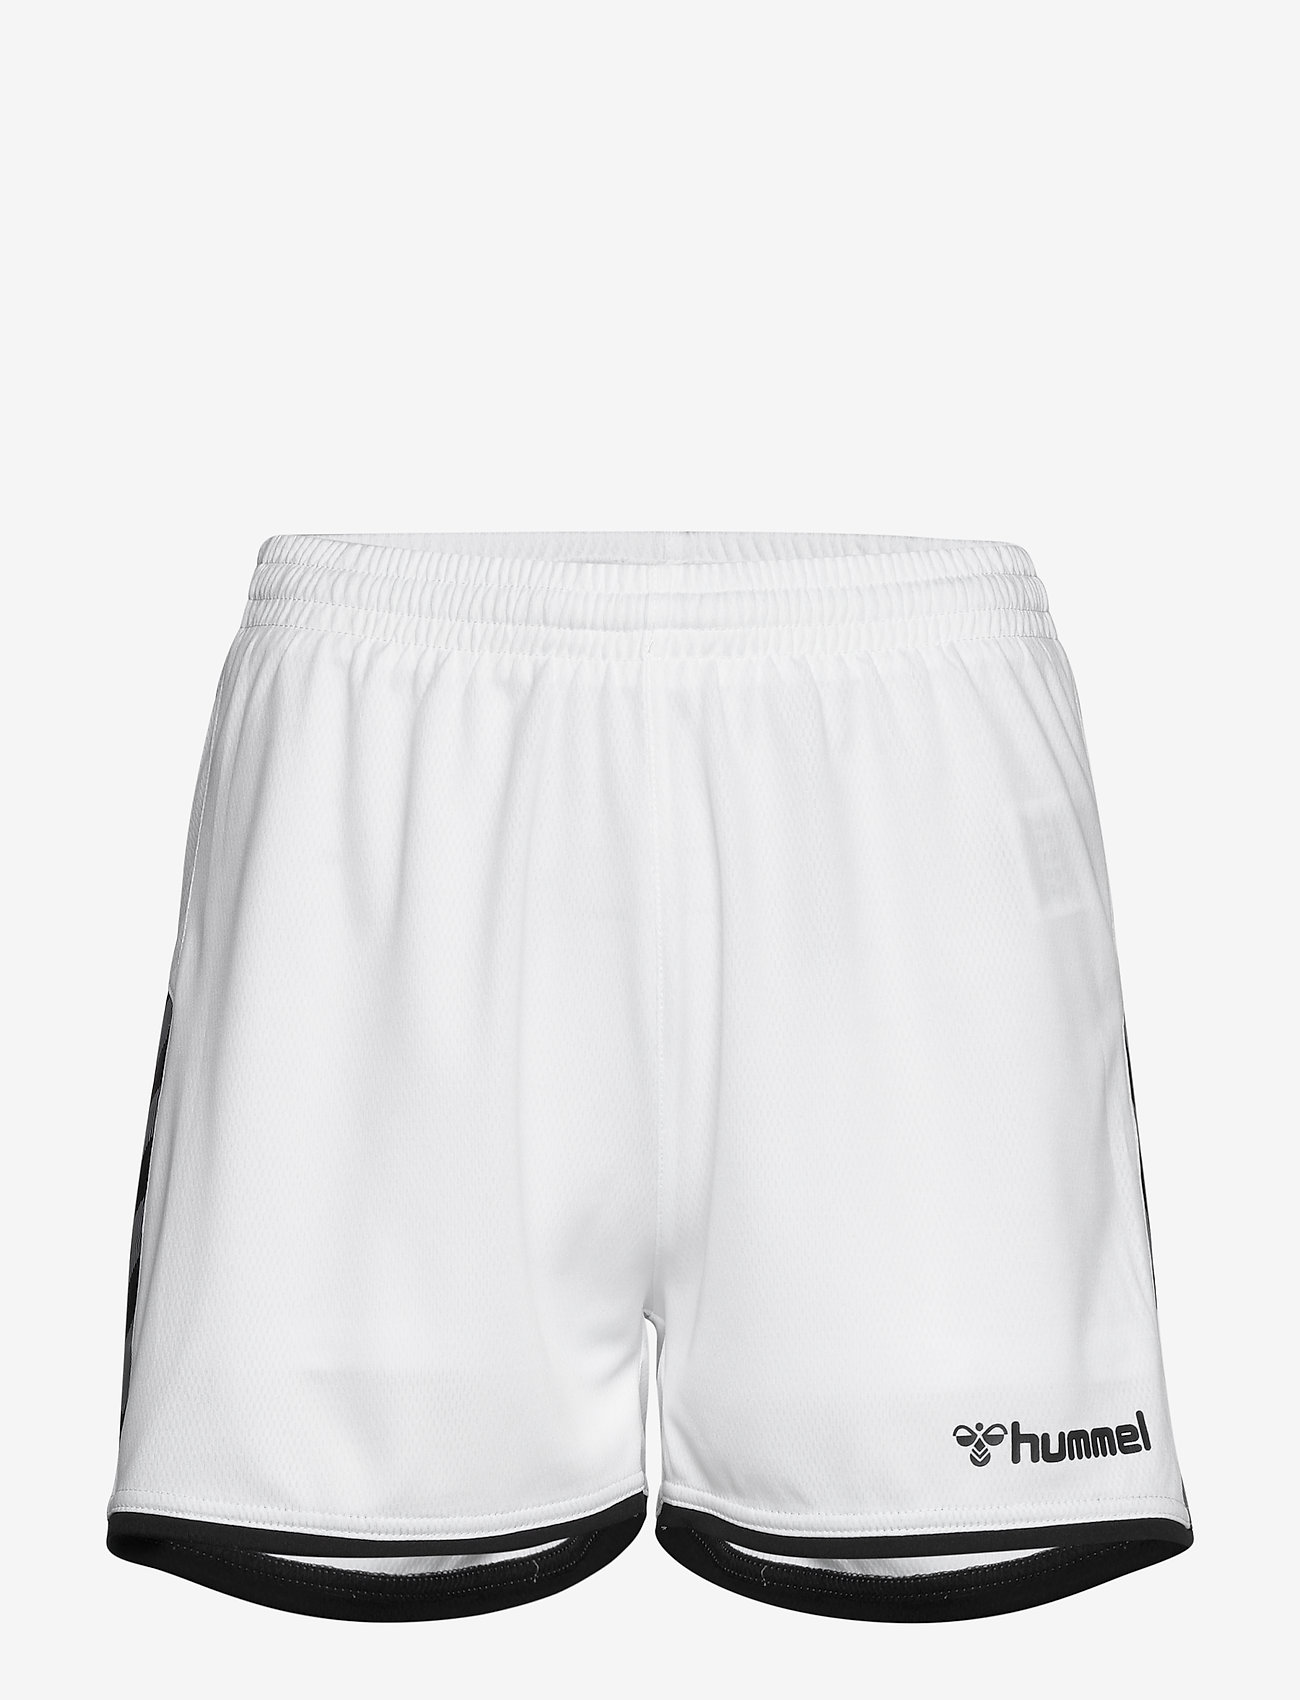 Hummel - hmlAUTHENTIC POLY SHORTS WOMAN - træningsshorts - white - 0